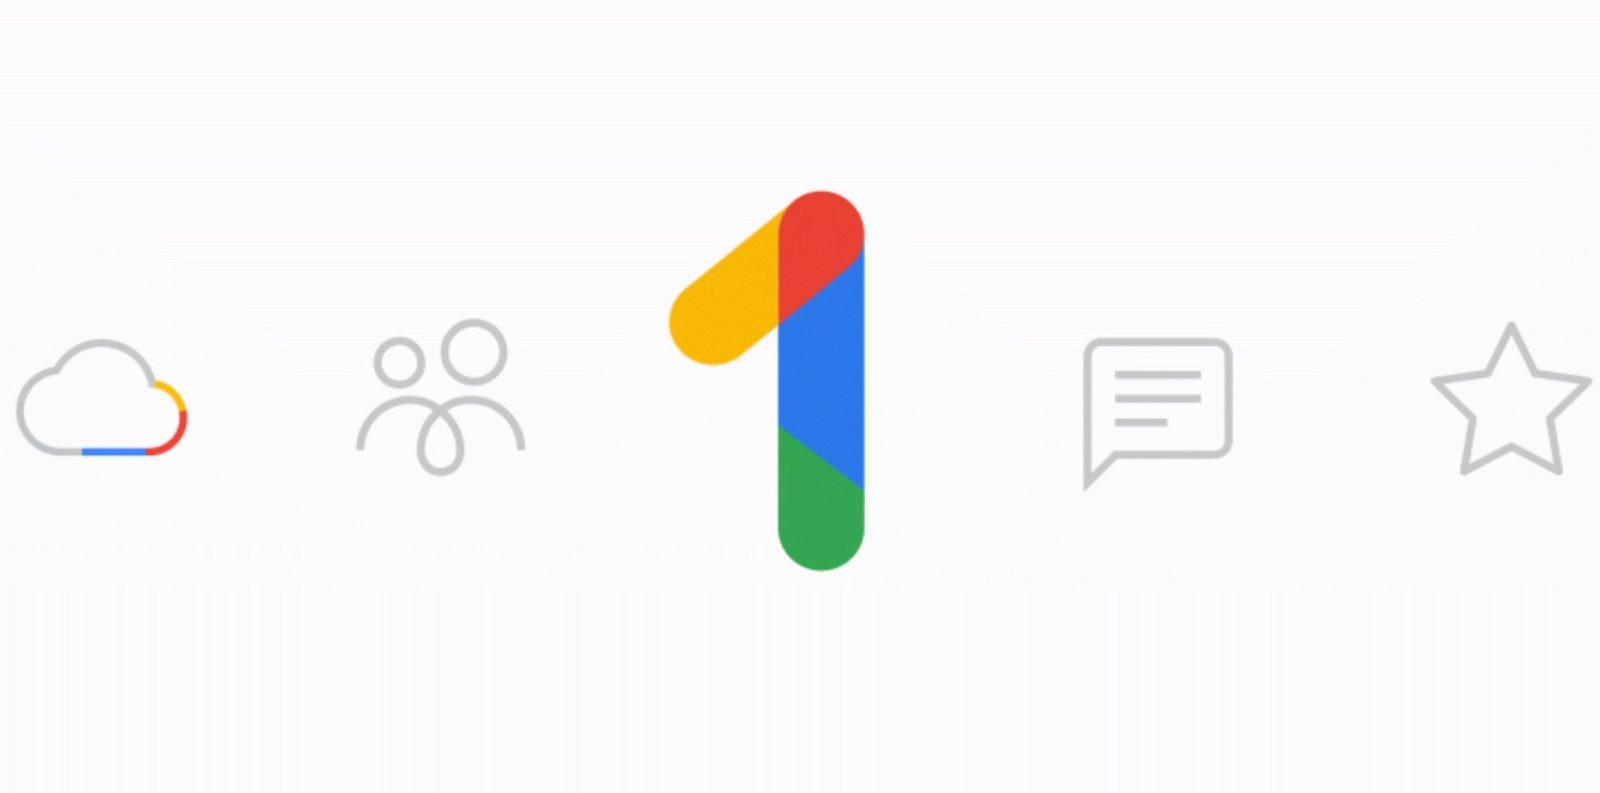 Google One' simplifies cloud storage plans w/ family sharing